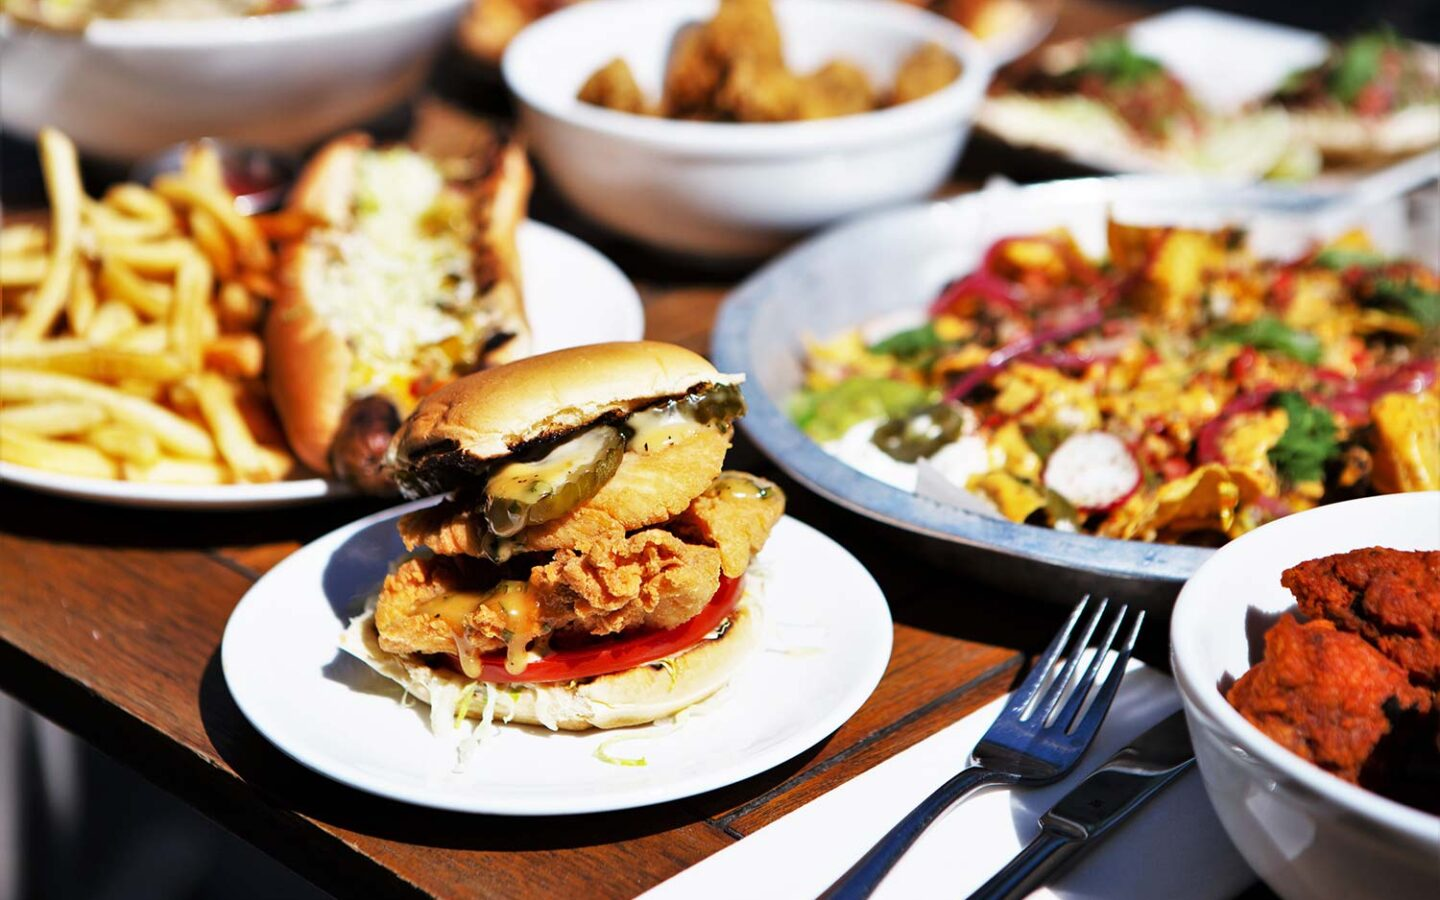 focused shot of crispy fried chicken sandwich on white plate around other meals, from hotdog to nacho platter